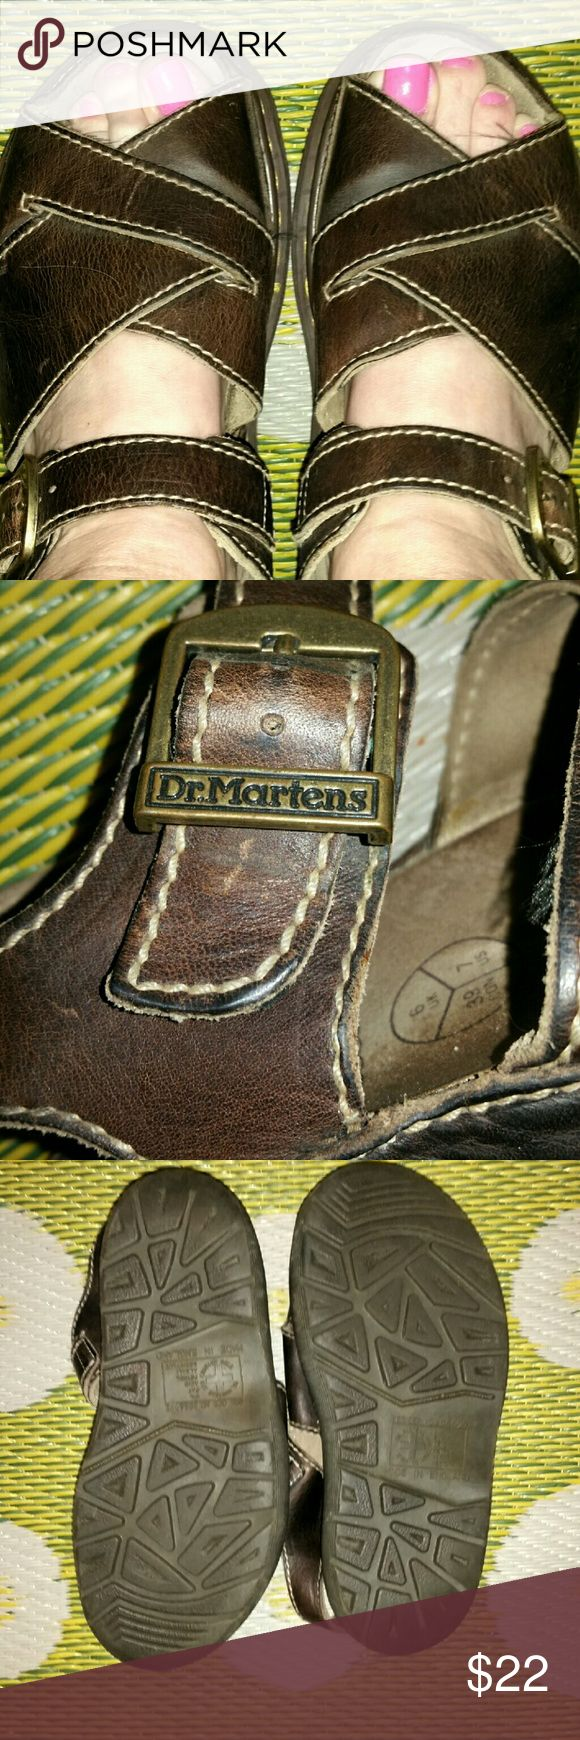 Dr Martin's Brown Leather Sandals Authentic Dr Martin's sandals; previously owned, but Doc's shoes last forever;  size 38 UK, states 7 on inside but defiantly bigger, will fit 7.5 or a small 8 (my size ); foot bed shows foot print from wearing, but other than that they are in great condition, no flaws or issues. Dr. Martens Shoes Sandals